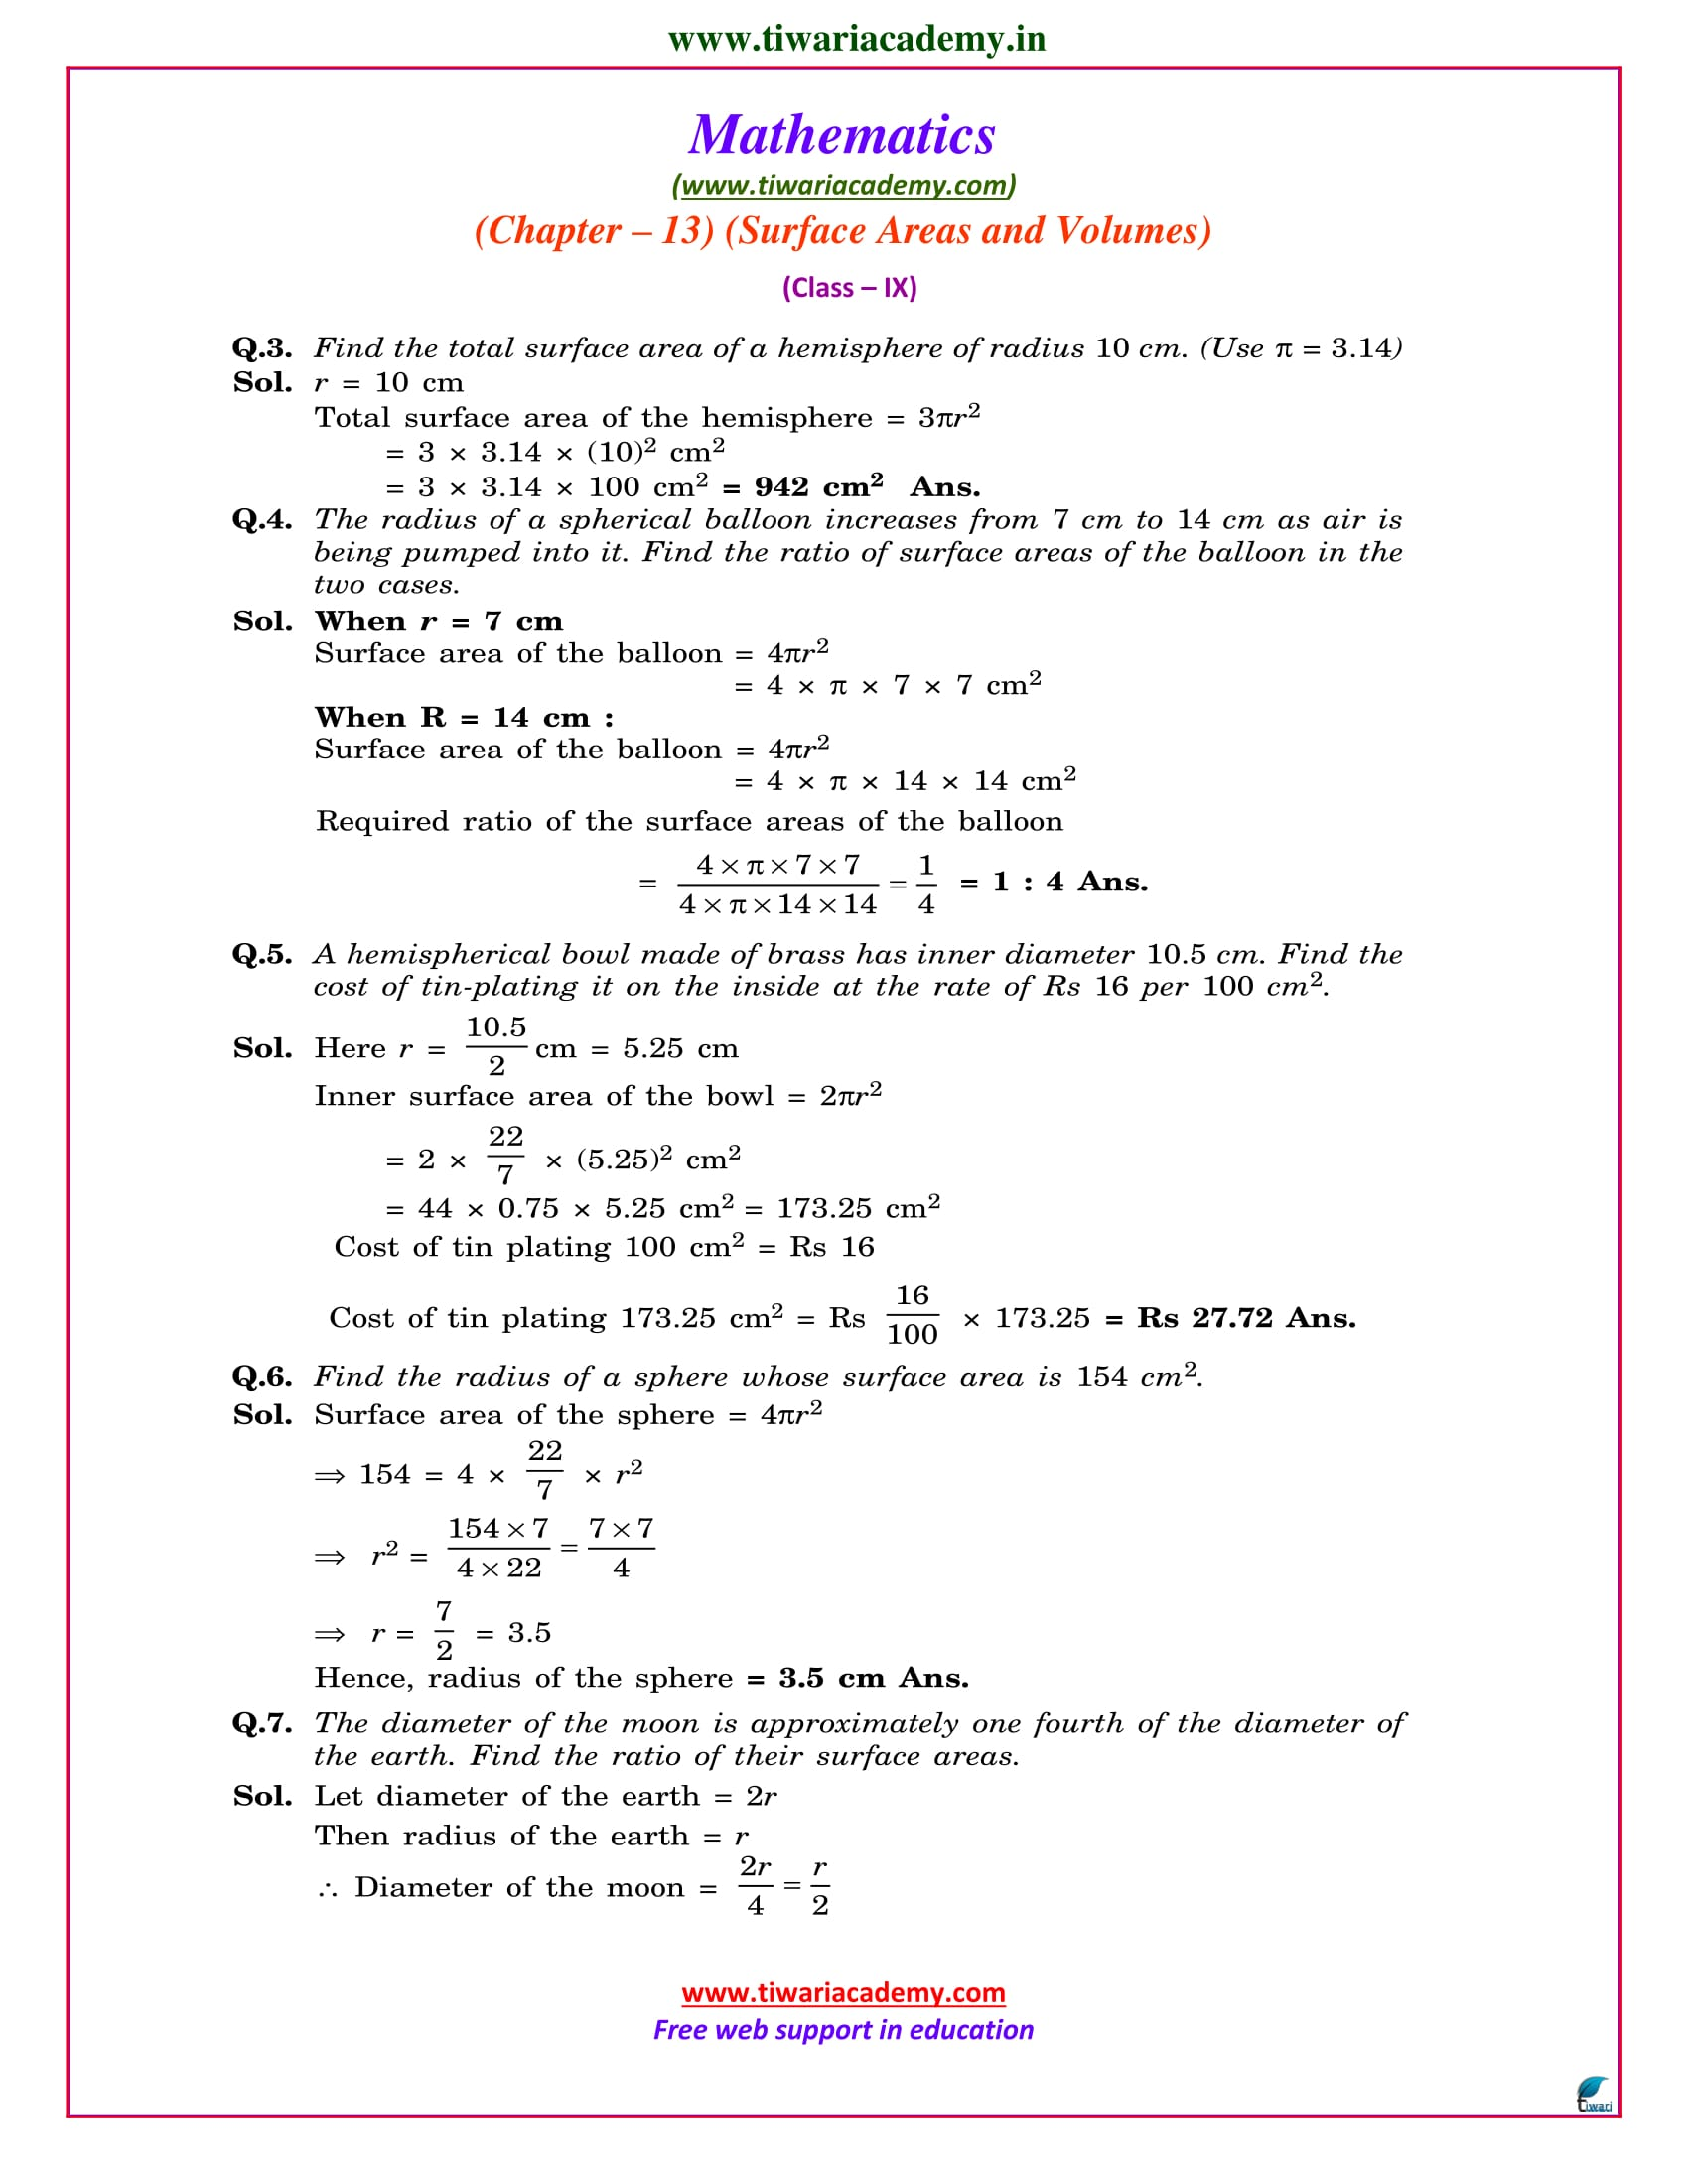 class 9 maths exercise 13.4 solutions